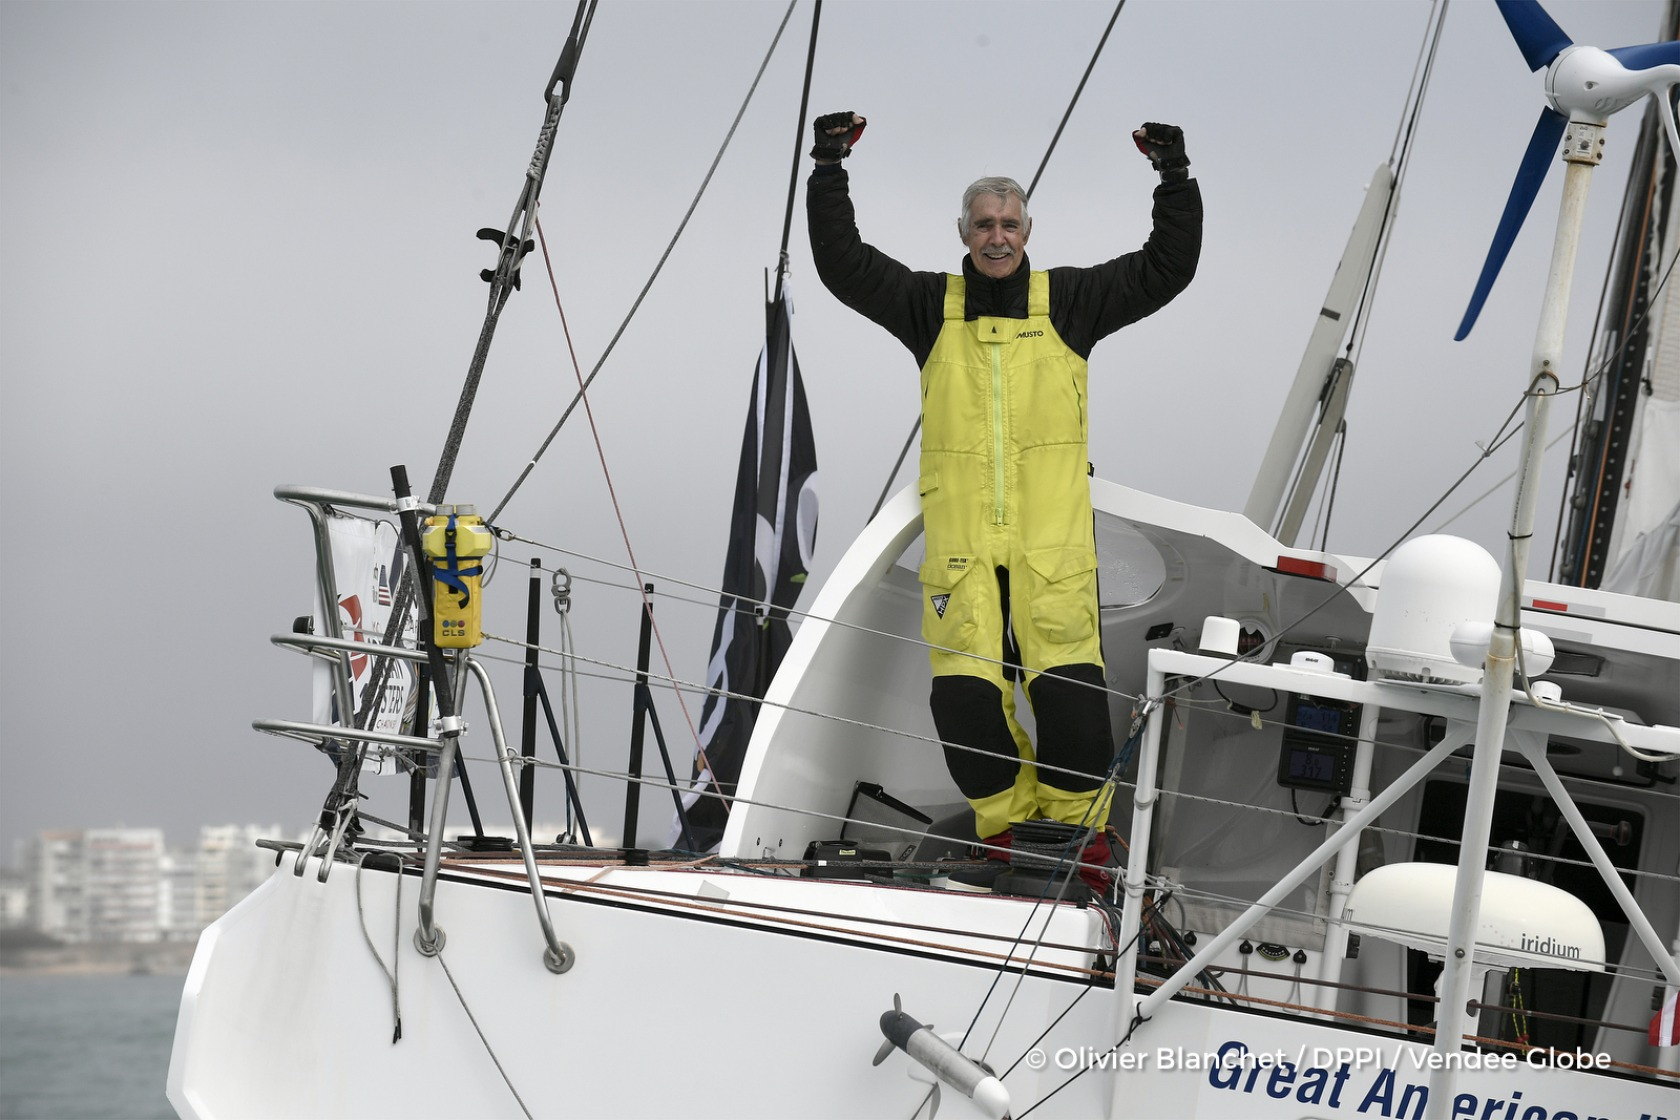 Celebration during Finish arrival of Rich Wilson (USA), skipper Great American IV, 13th of the sailing circumnavigation solo race Vendee Globe, in Les Sables d'Olonne, France, on February 21st, 2017 - Photo Olivier Blanchet / DPPI / Vendee GlobeArrivée de Rich Wilson (USA), skipper Great American IV, 13ème du Vendee Globe, aux Sables d'Olonne, France, le 21 Février 2017 - Photo Olivier Blanchet